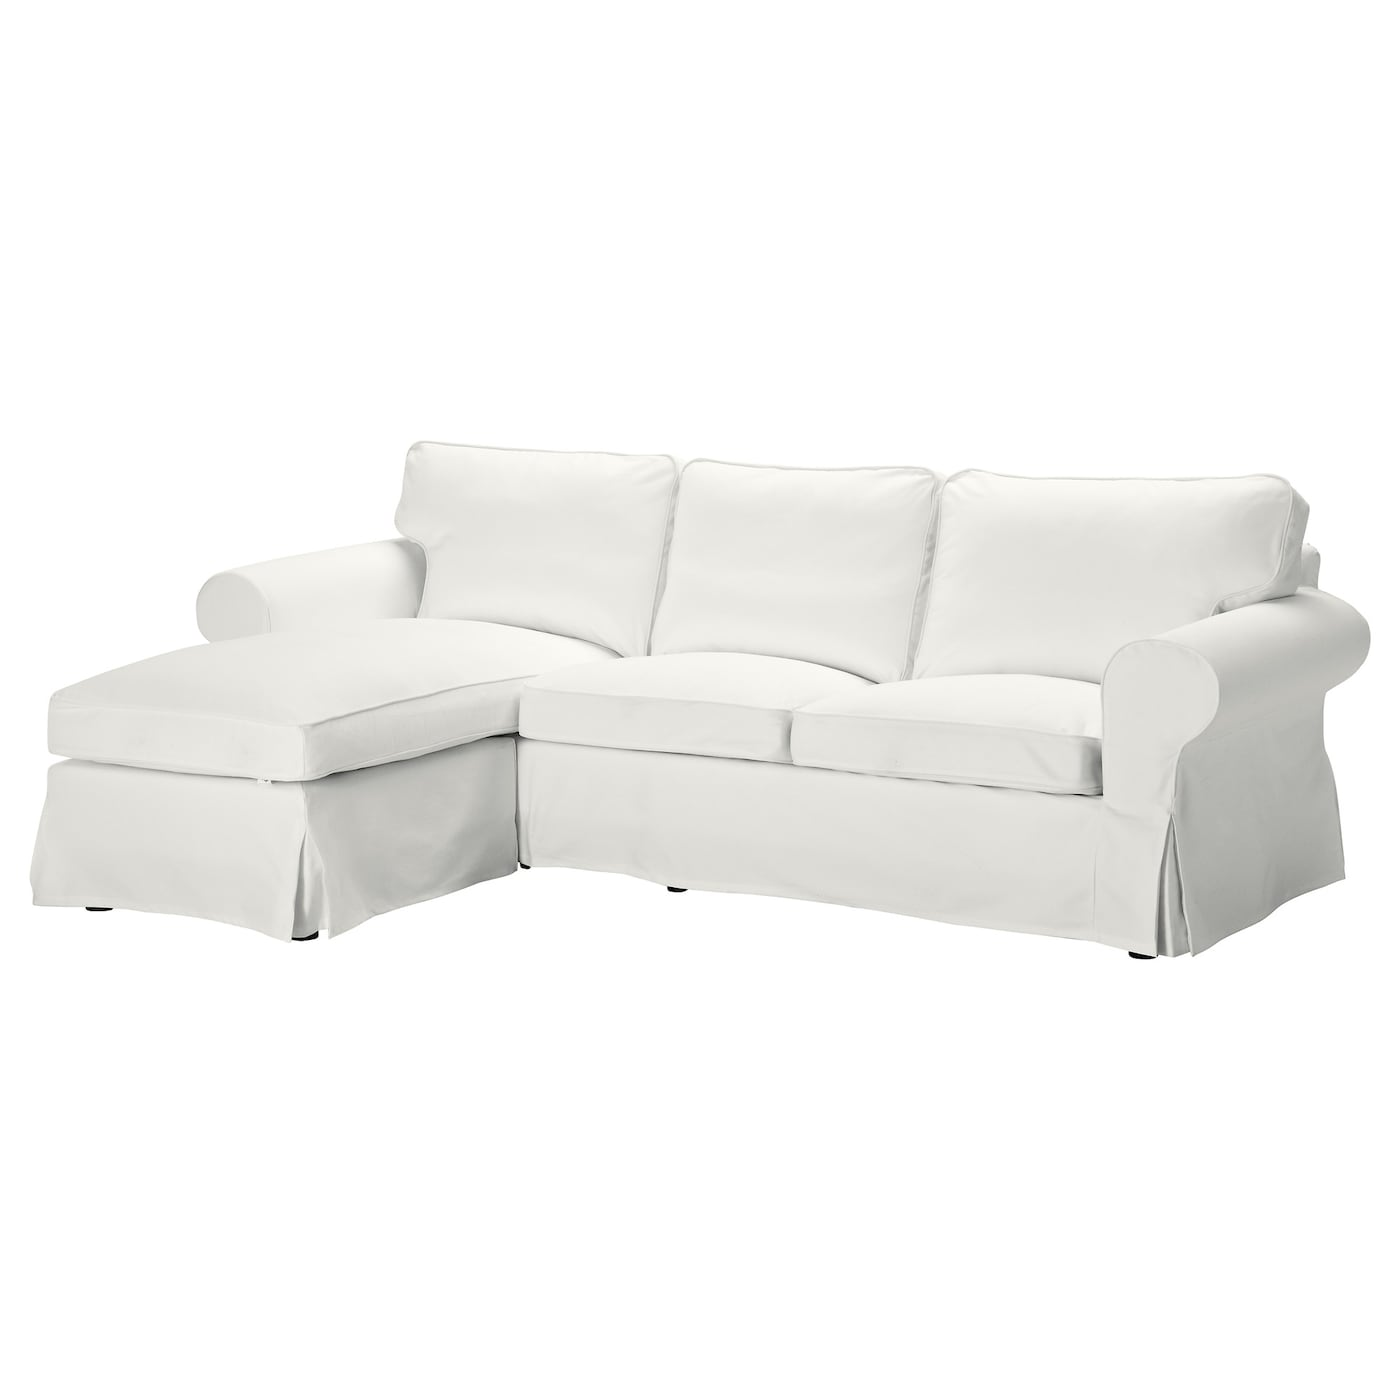 Ektorp two seat sofa and chaise longue blekinge white ikea for Couch with 2 chaises